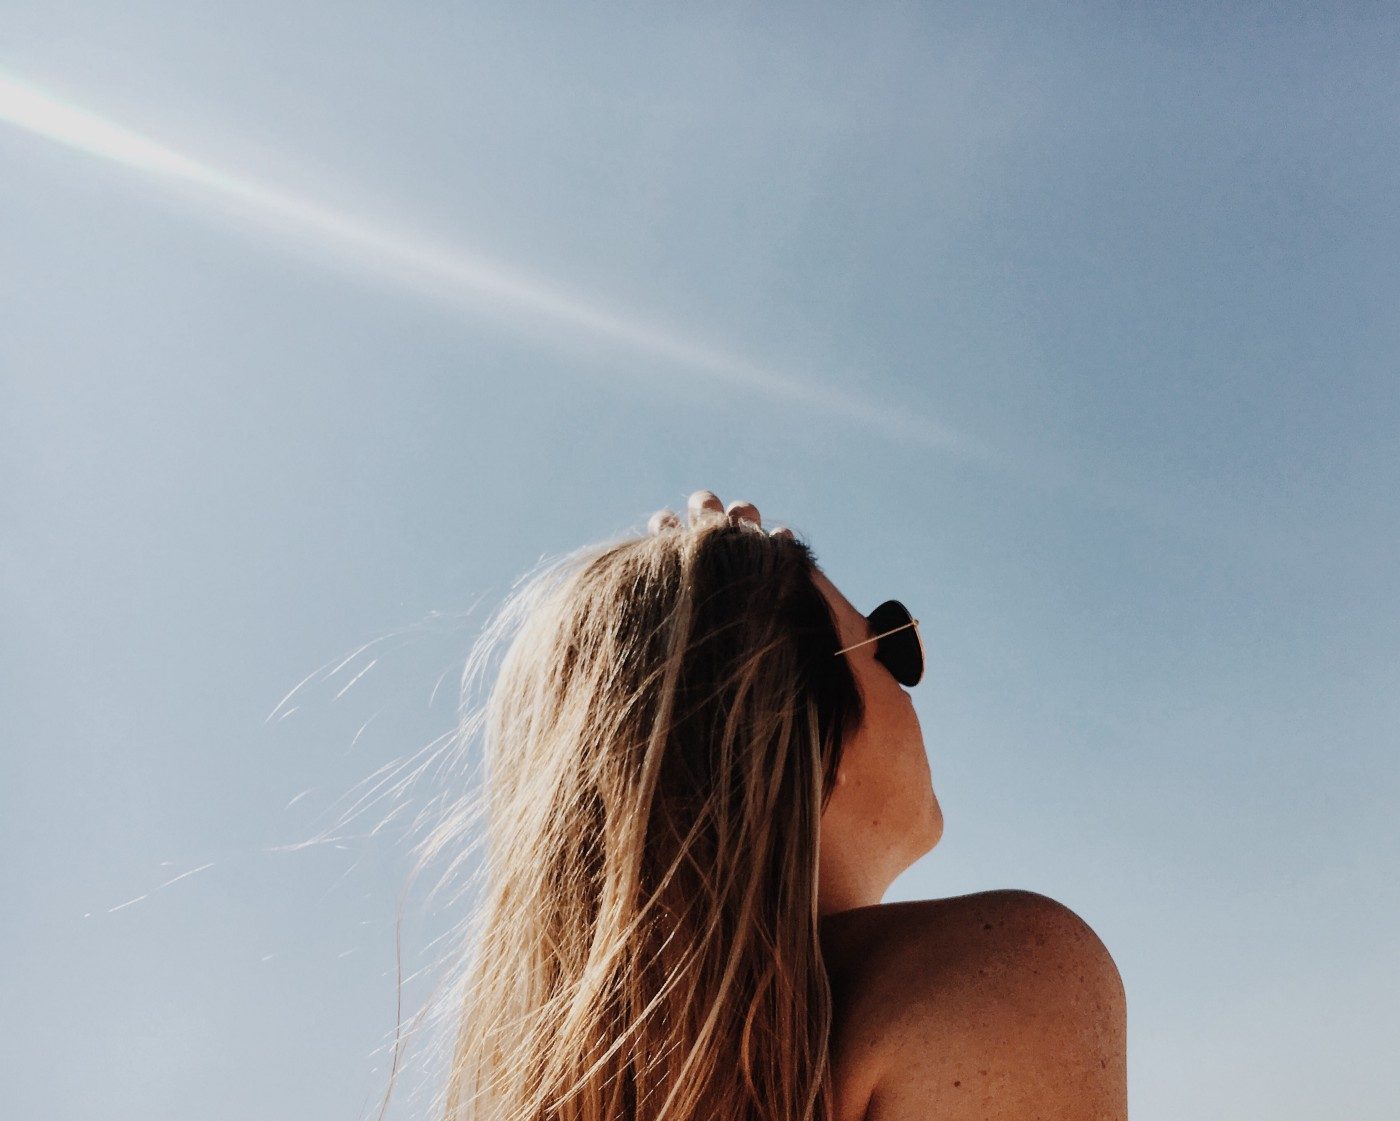 a woman standing outside looking up at the sky with sunglasses on